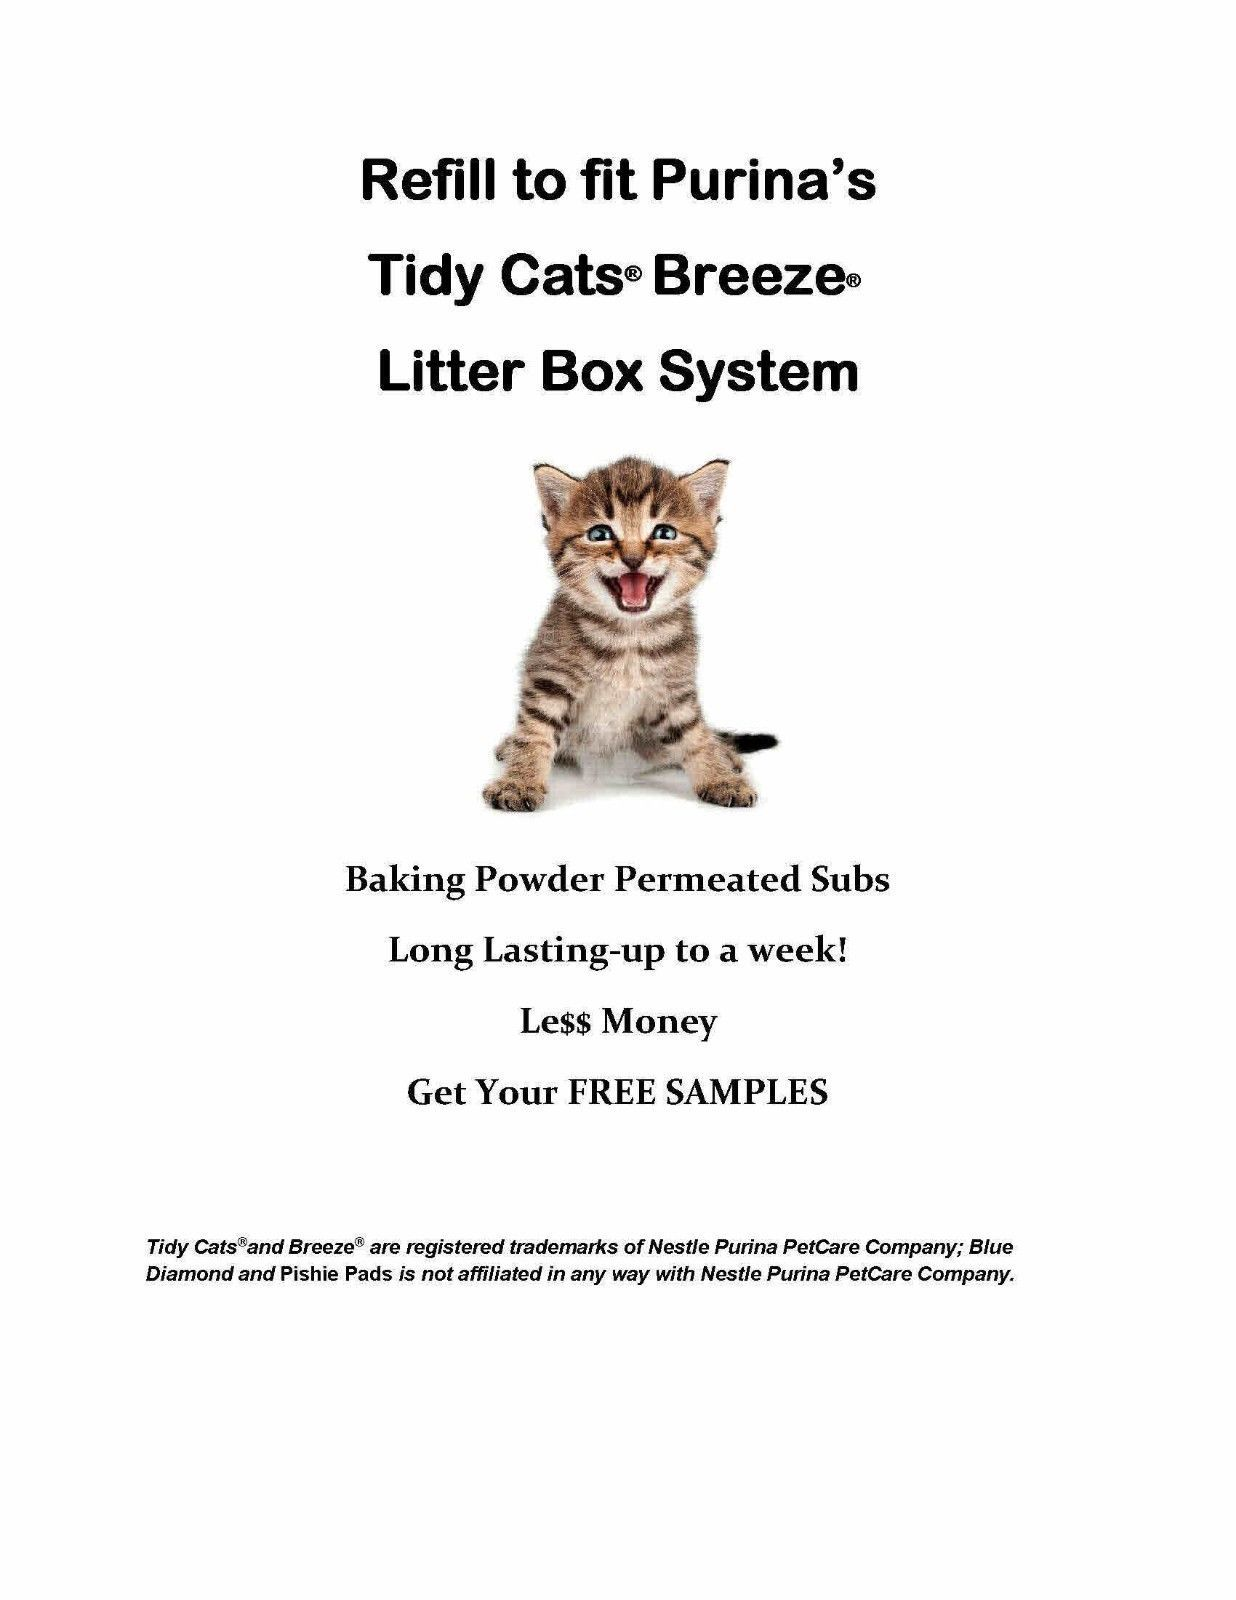 120 Pishie Cat Generic Pads for Litter Box System with Baking Powder Free Sample - $62.95